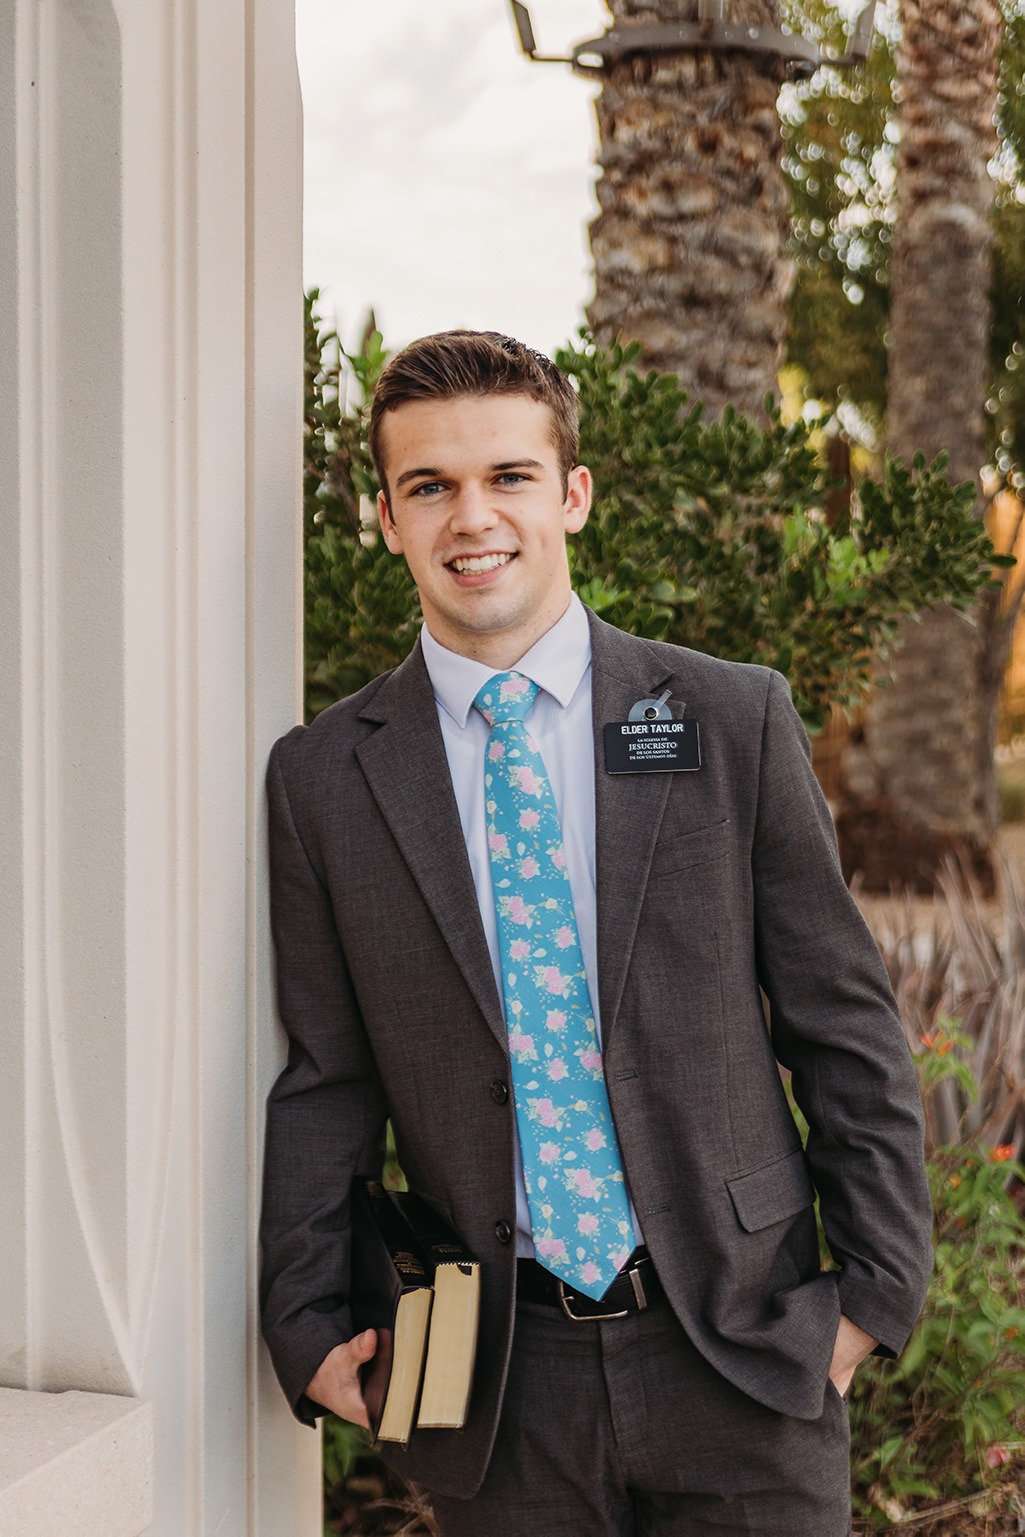 LDS missionary photoshoot at the gilbert az temple